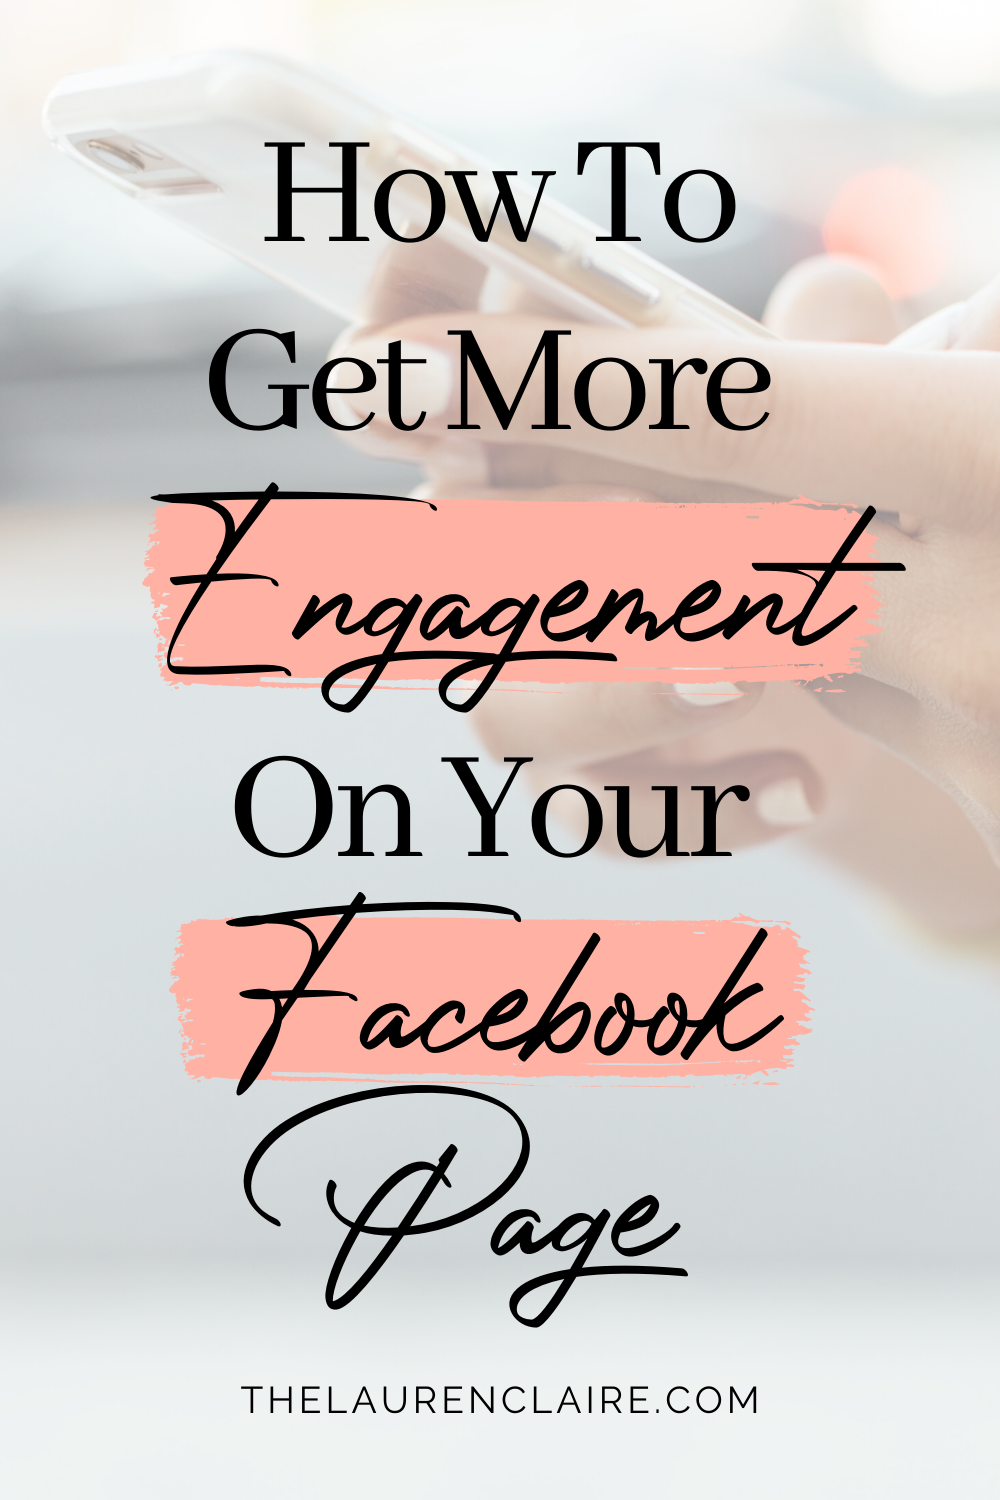 HOW TO GET MORE ENGAGEMENT ON YOUR FACEBOOK BUSINESS PAGE